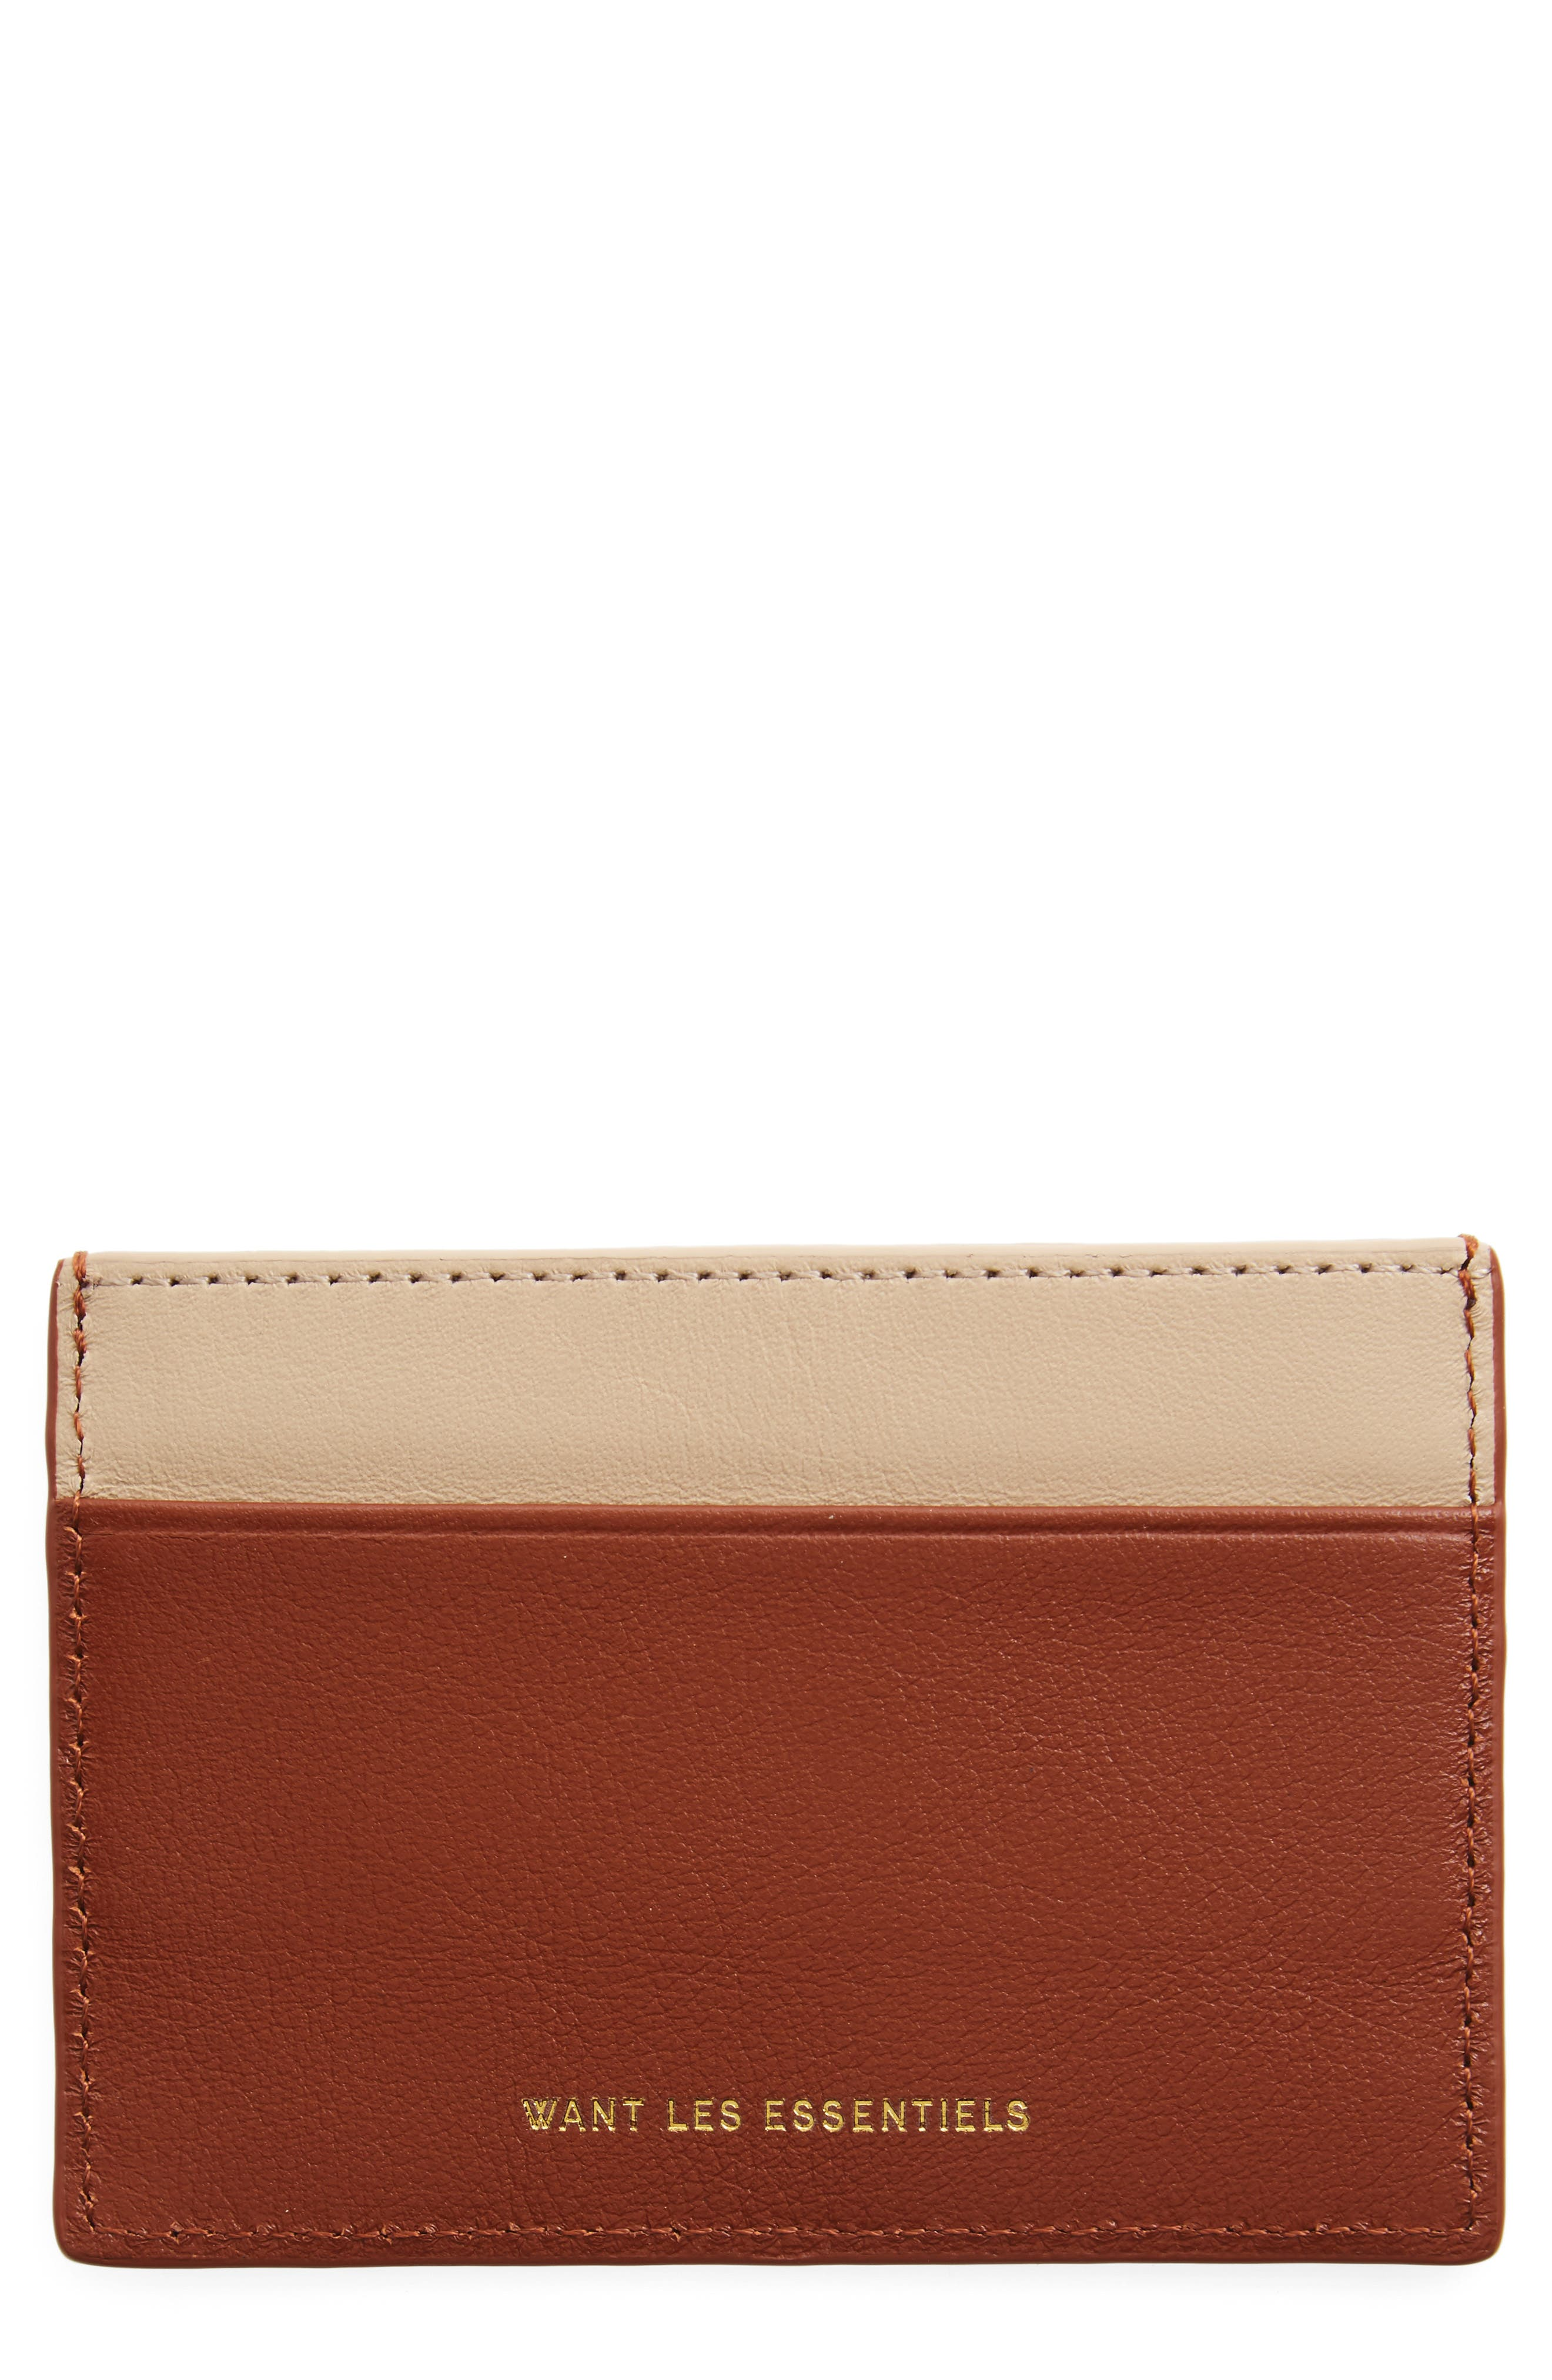 Alternate Image 1 Selected - WANT LES ESSENTIELS Branson Leather Card